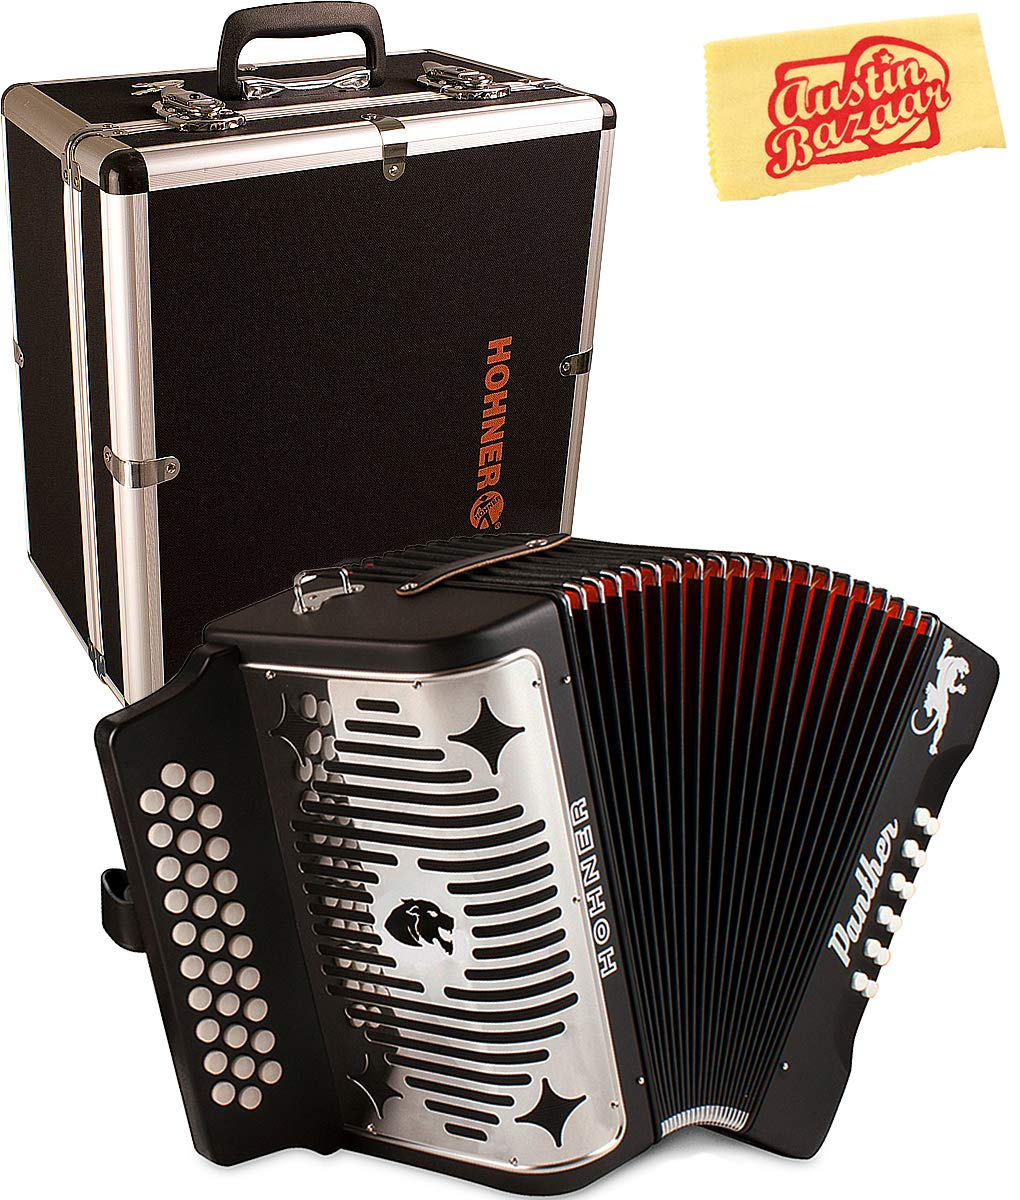 Hohner Panther Diatonic Accordion - Keys G/C/F Bundle with Hard Case and Austin Bazaar Polishing Cloth